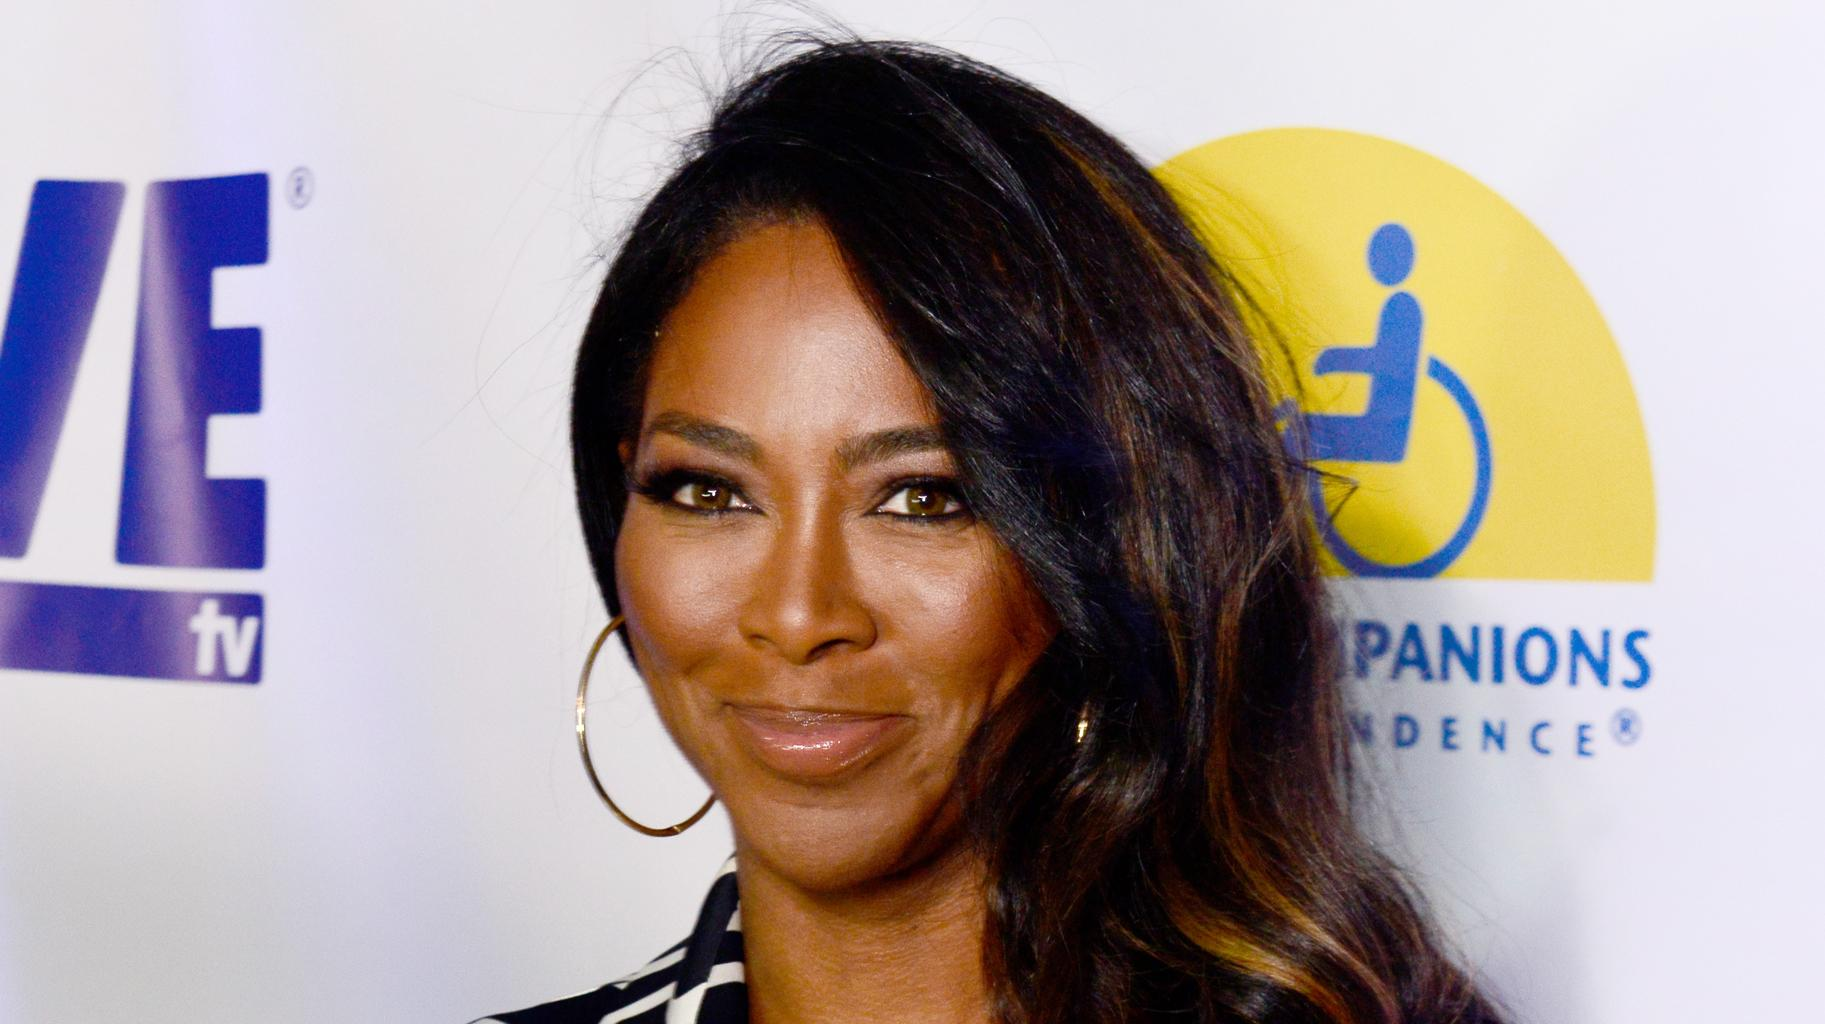 Kenya Moore Annoucens Her Fans That She'll Make An Appearance In The 'Family Reunion' Netflix Series